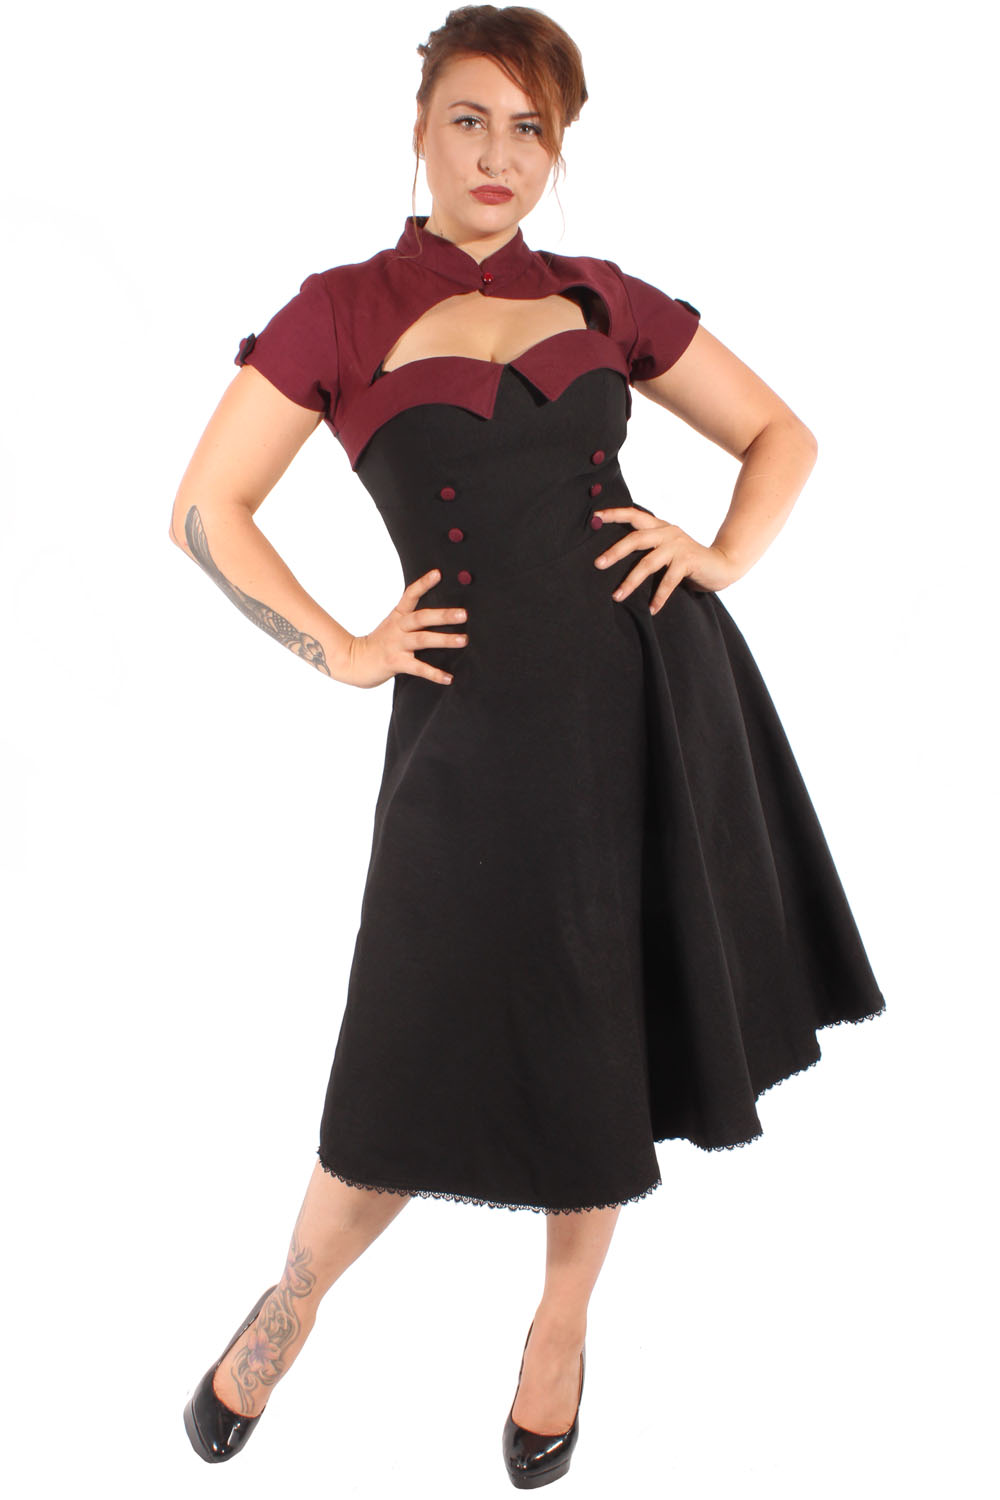 Retro Uniform rockabilly Petticoatkleid Bolero Swing Kleid burgund